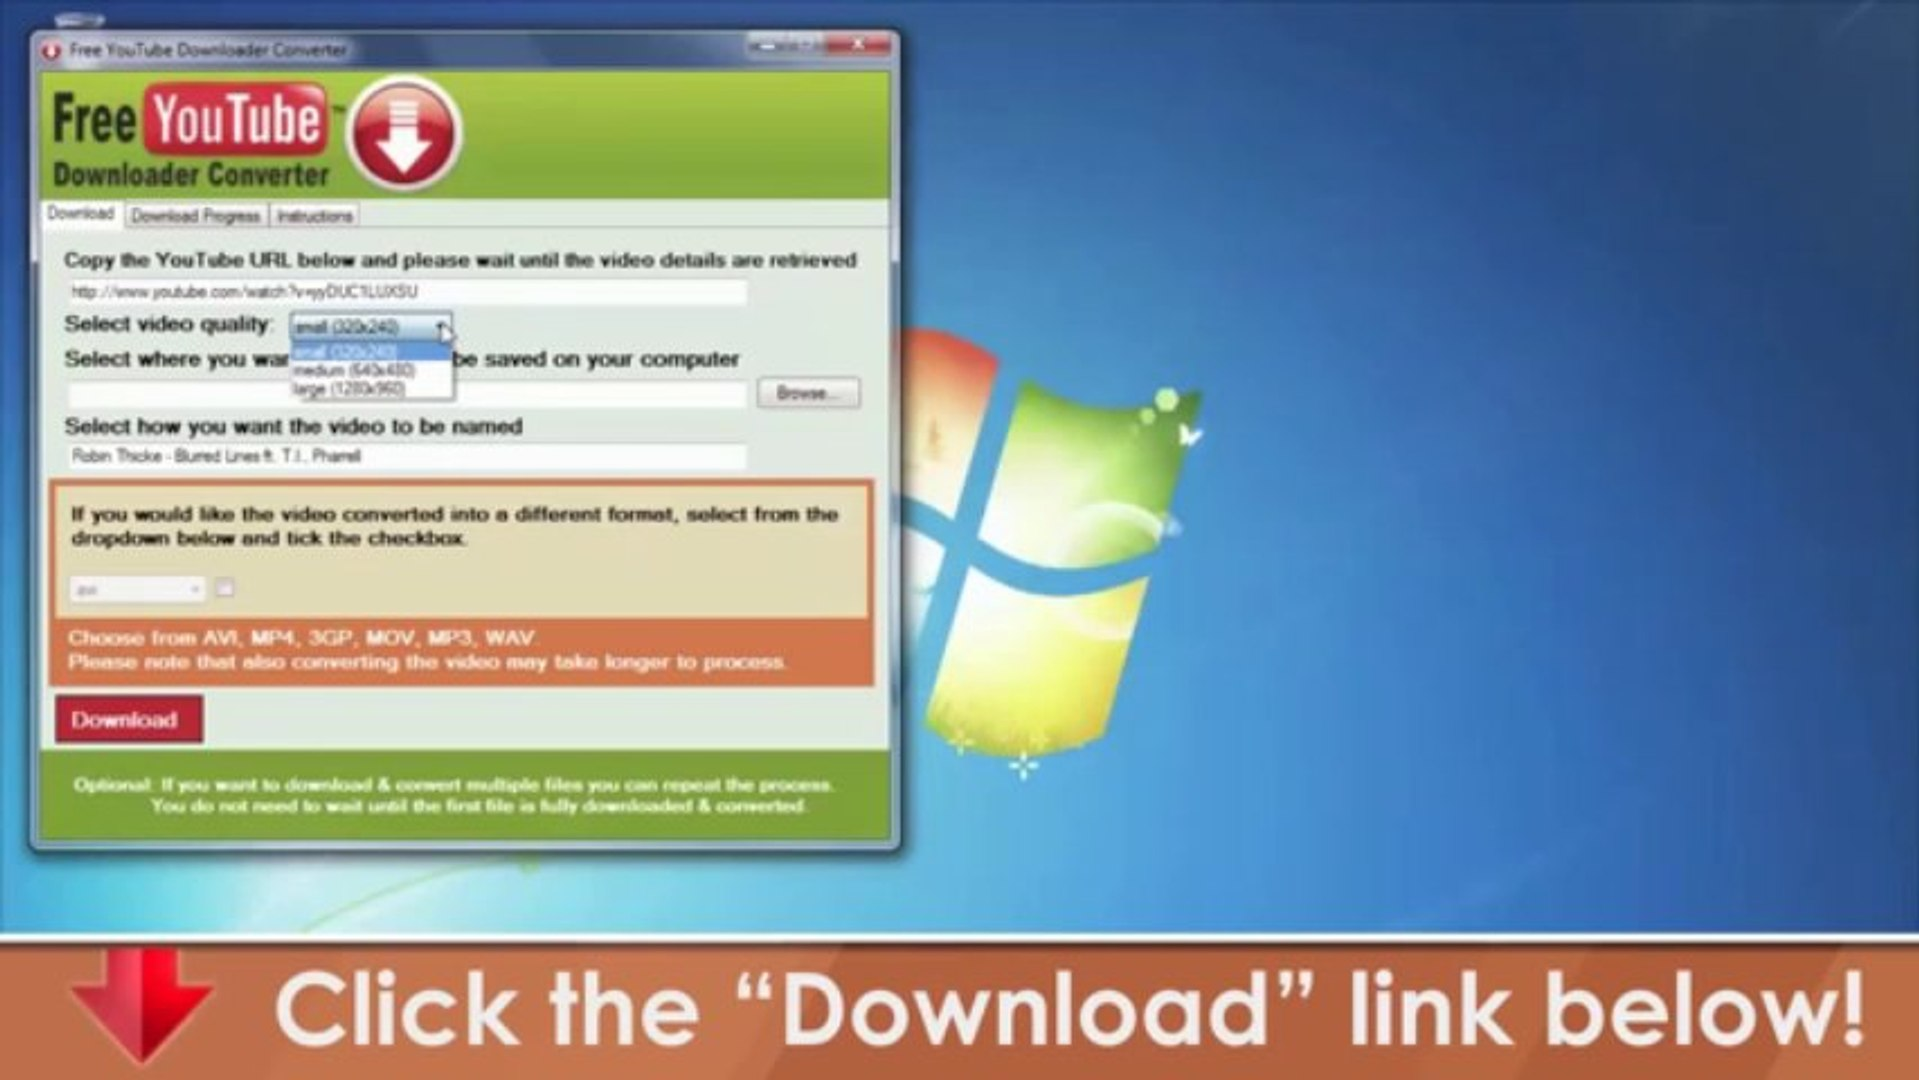 Free You Tube MP3 Converter -- Free Download Software